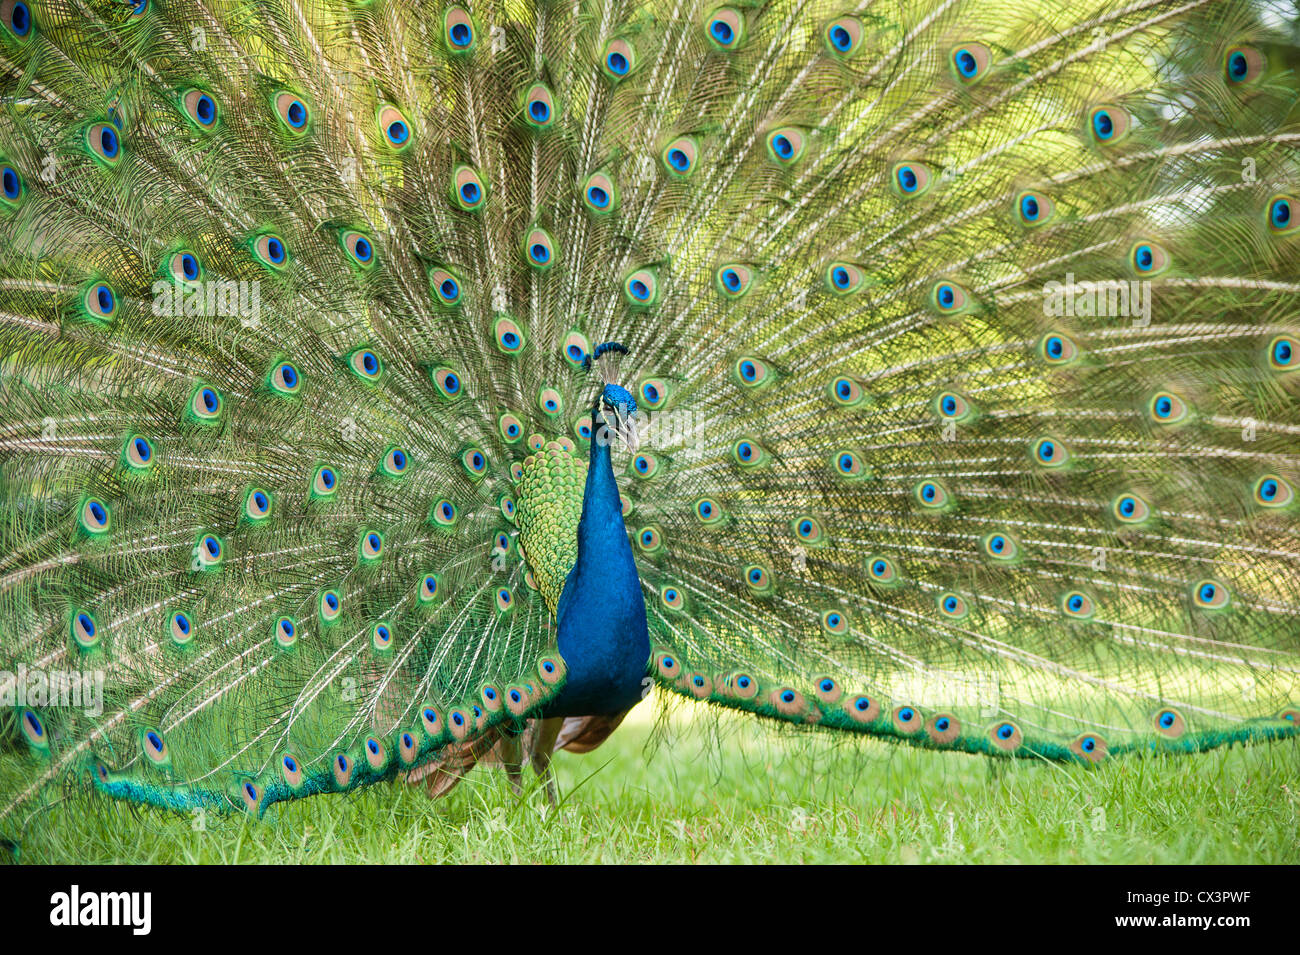 Peacock display feathers - Stock Image